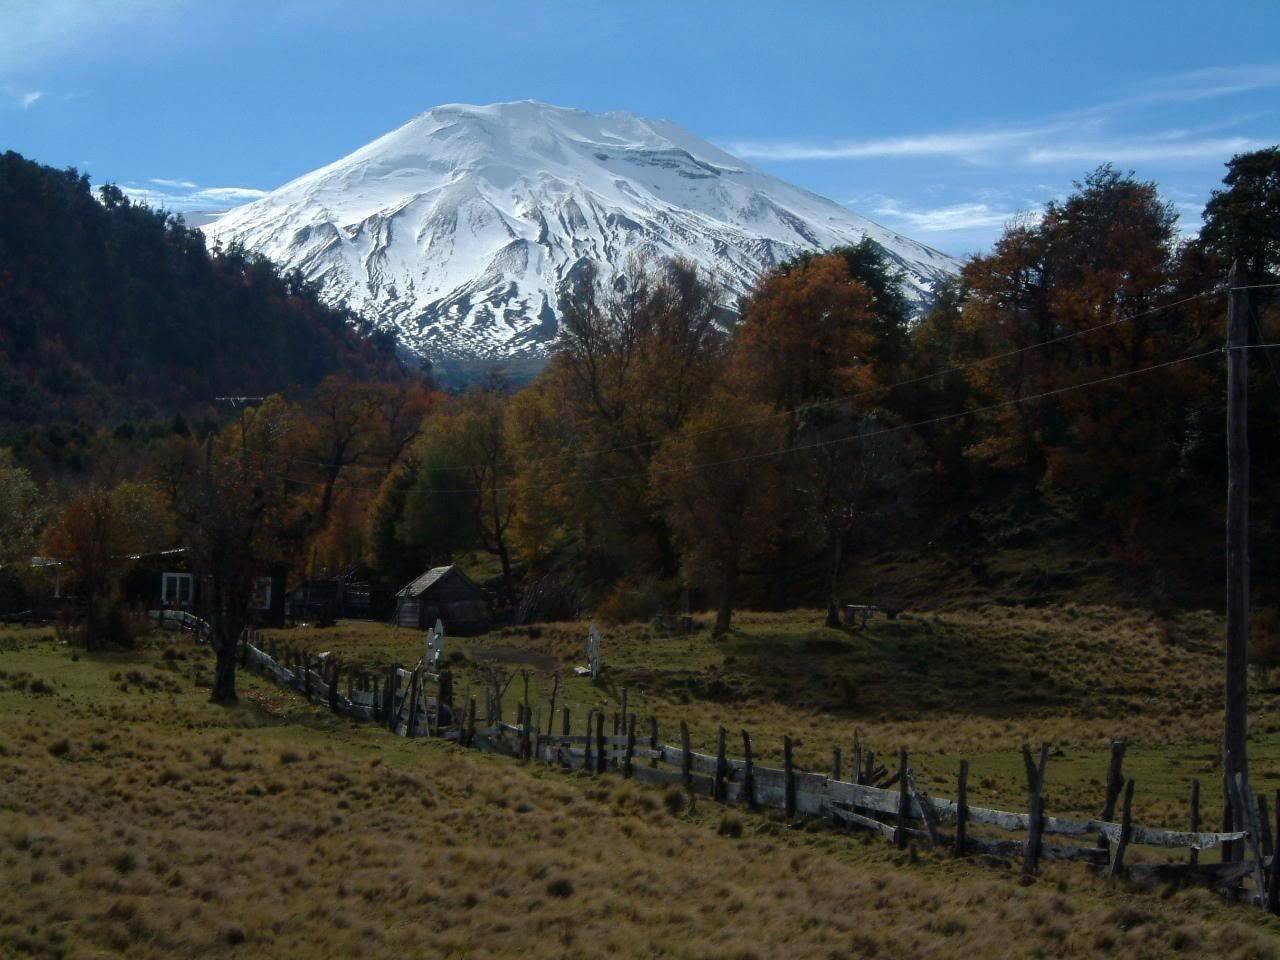 Le volcan Lonquimay - photo webshots